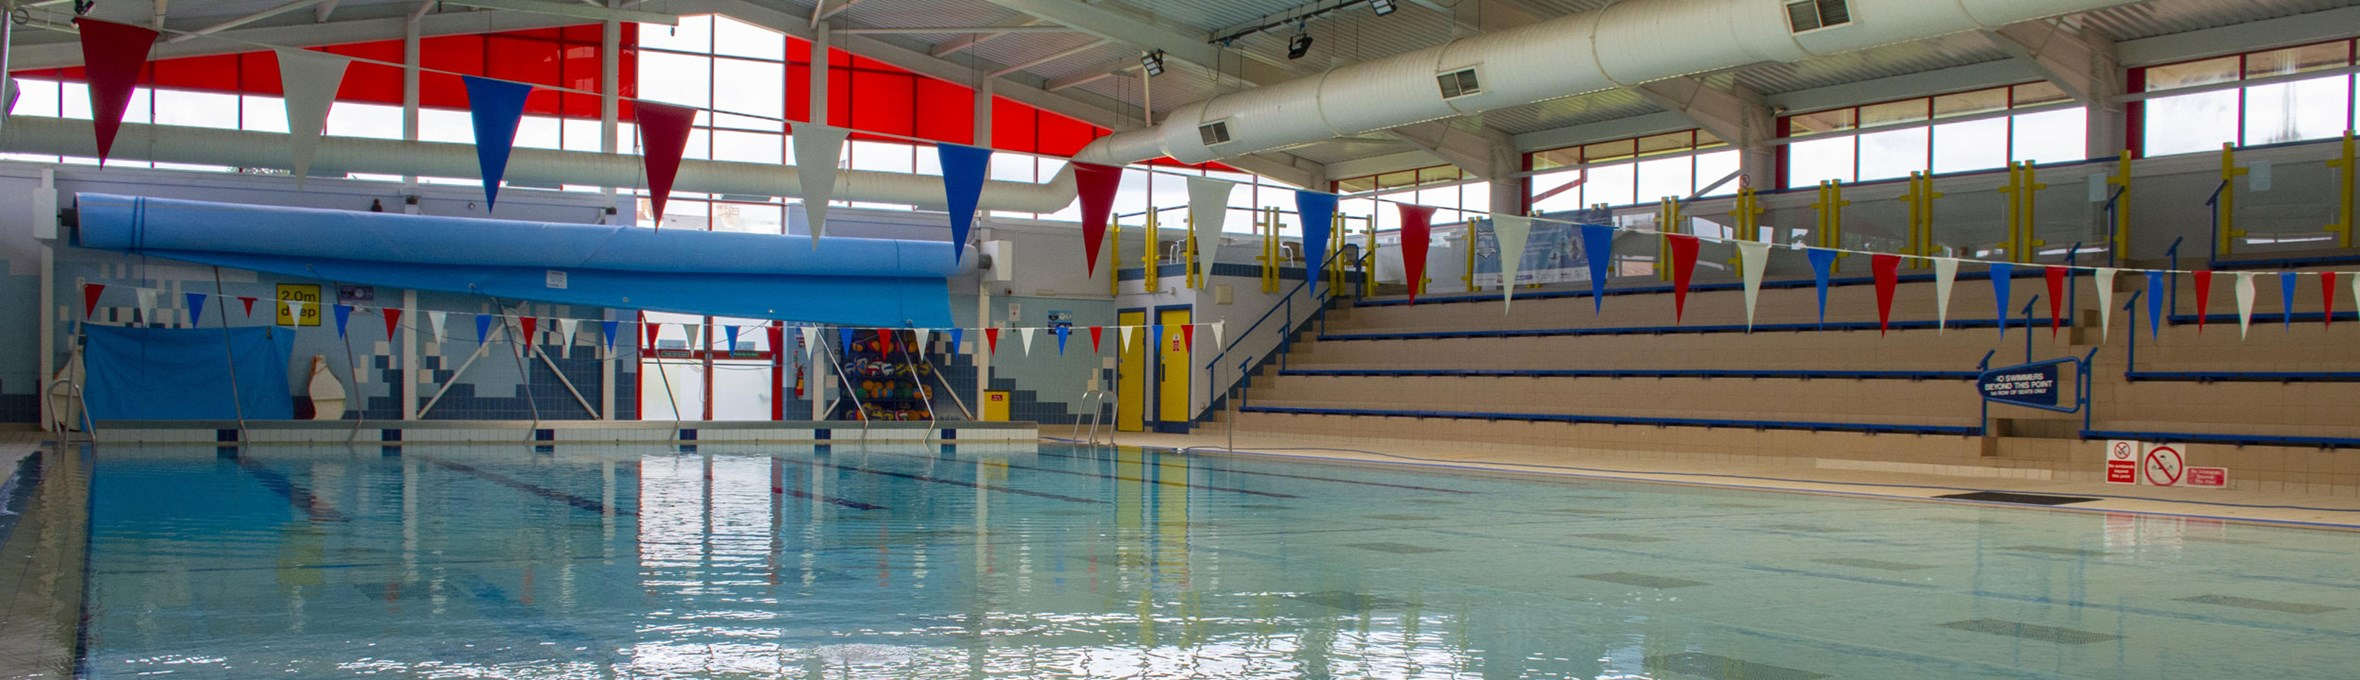 A view of an empty swimming pool with bunting across the roof